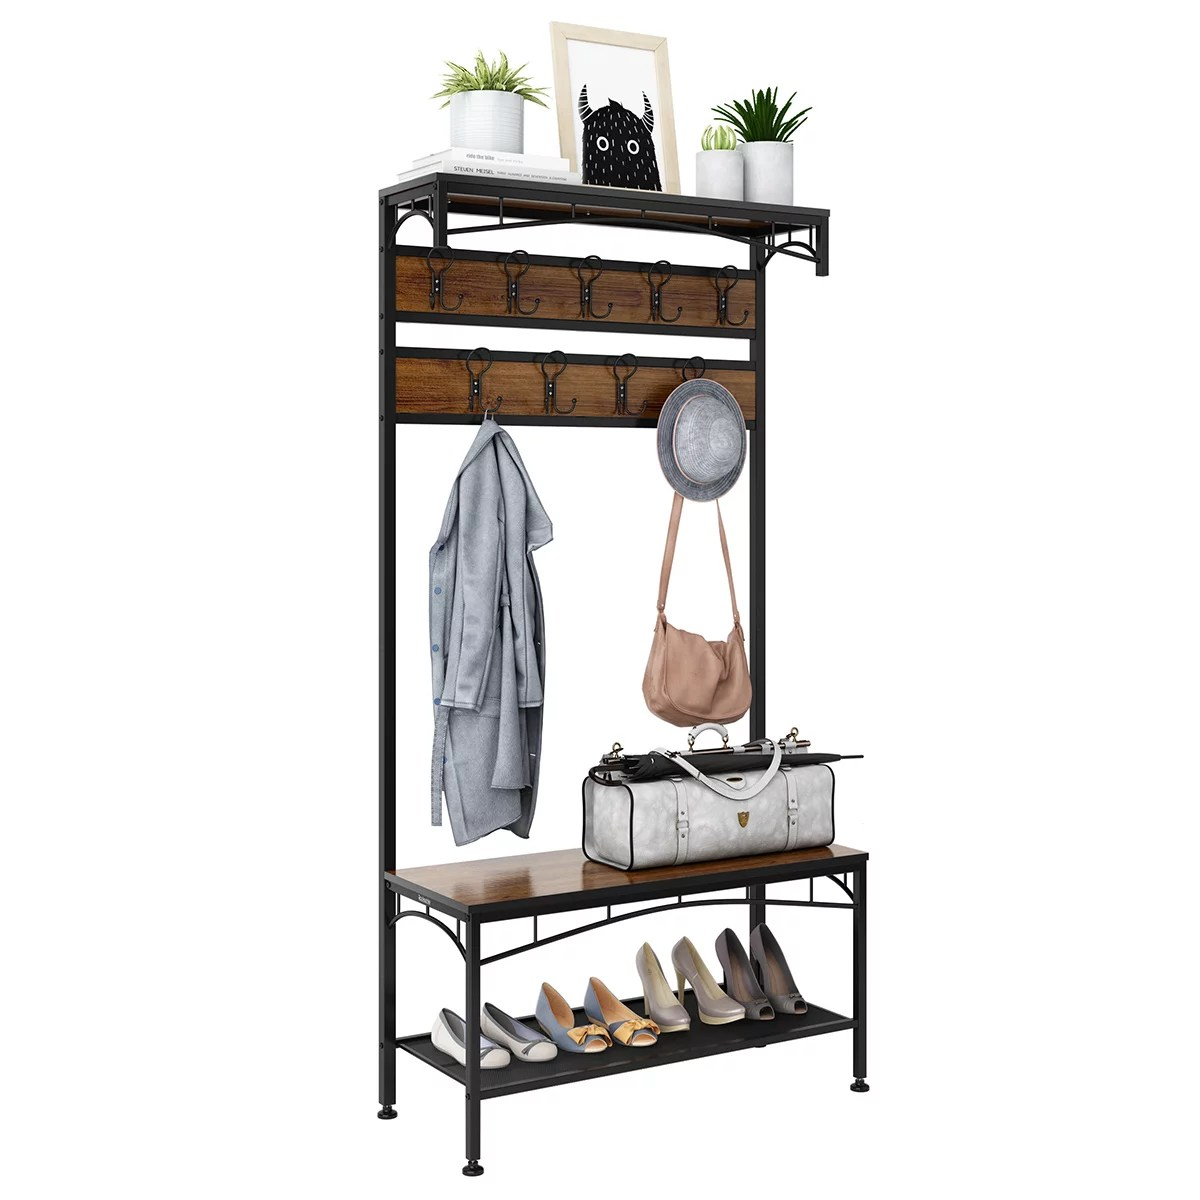 3 in 1 entryway coat rack rackaphile vintage metal and wood hall tree with storage bench shoe rack entryway storage shelf organizer with 18 hooks